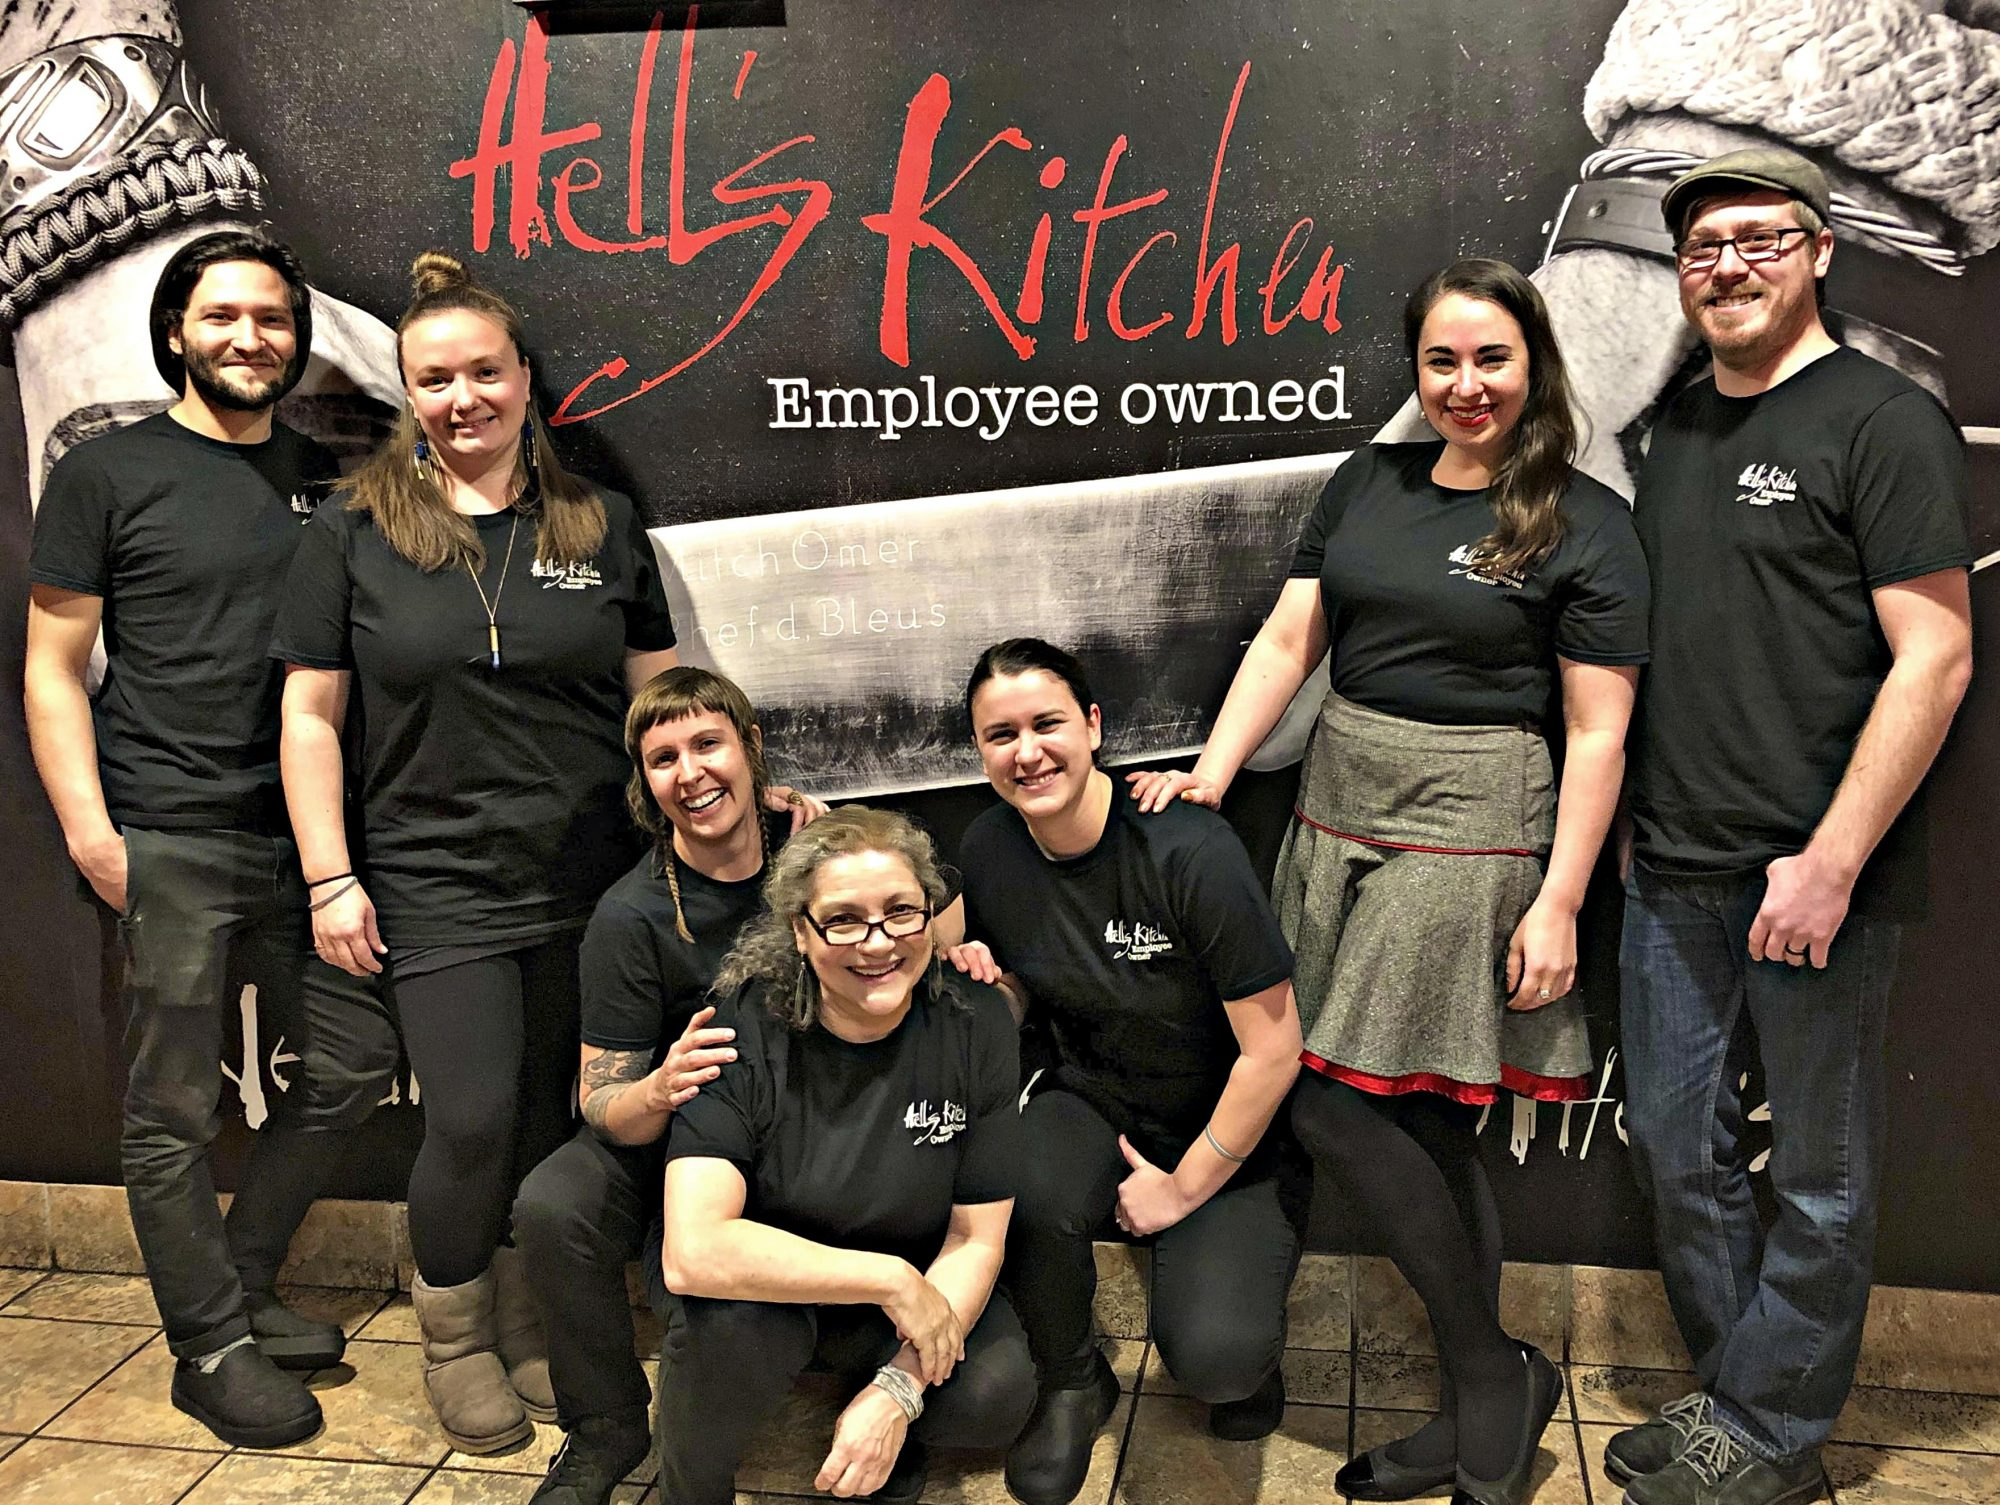 Hell's Kitchen employees